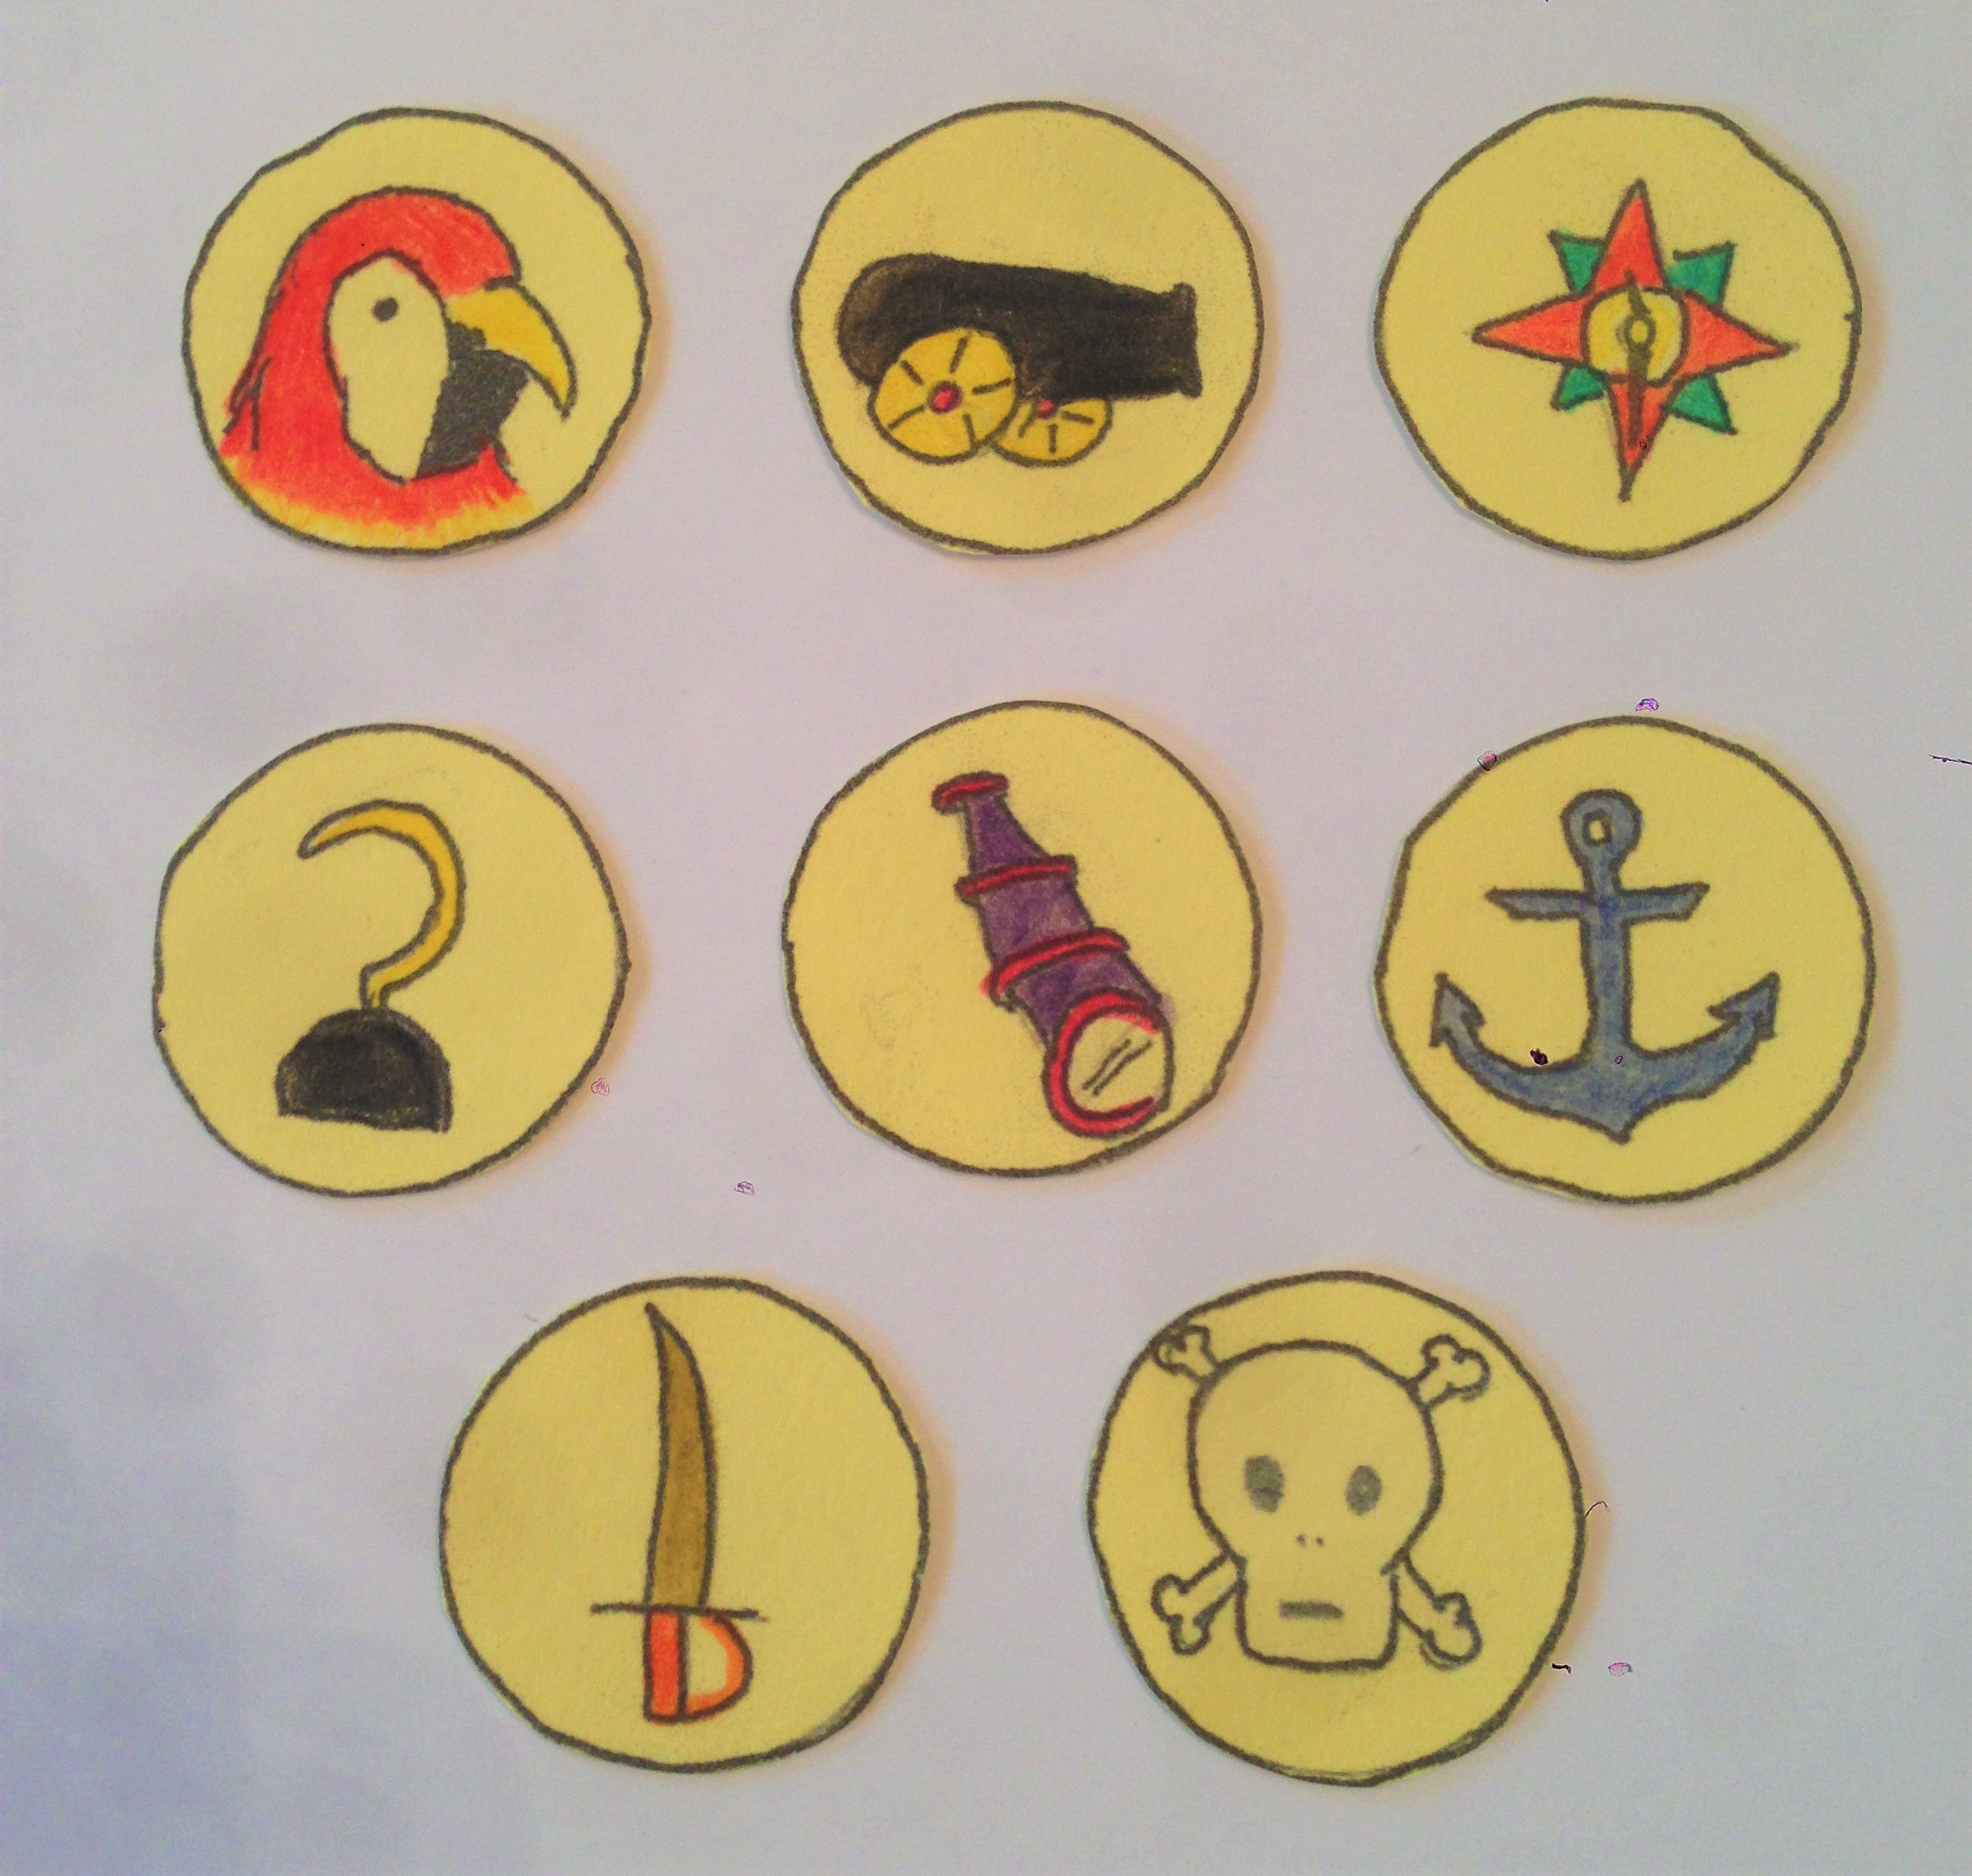 celebrate-picture-books-picture-book-review-avast!-pirate-game-tokens